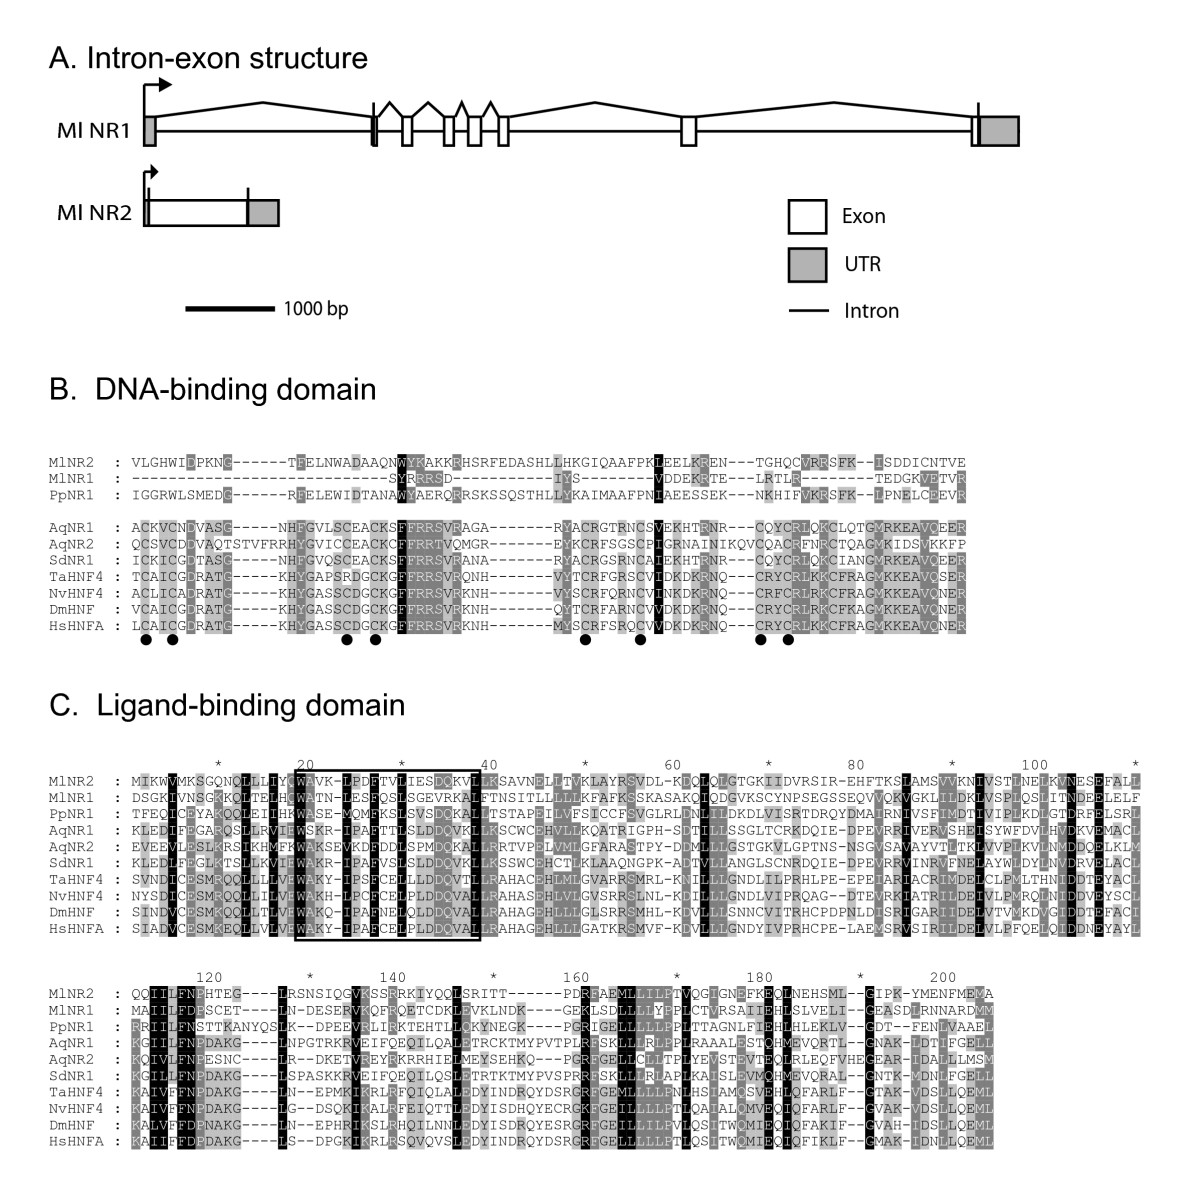 http://static-content.springer.com/image/art%3A10.1186%2F2041-9139-2-3/MediaObjects/13227_2010_Article_17_Fig1_HTML.jpg